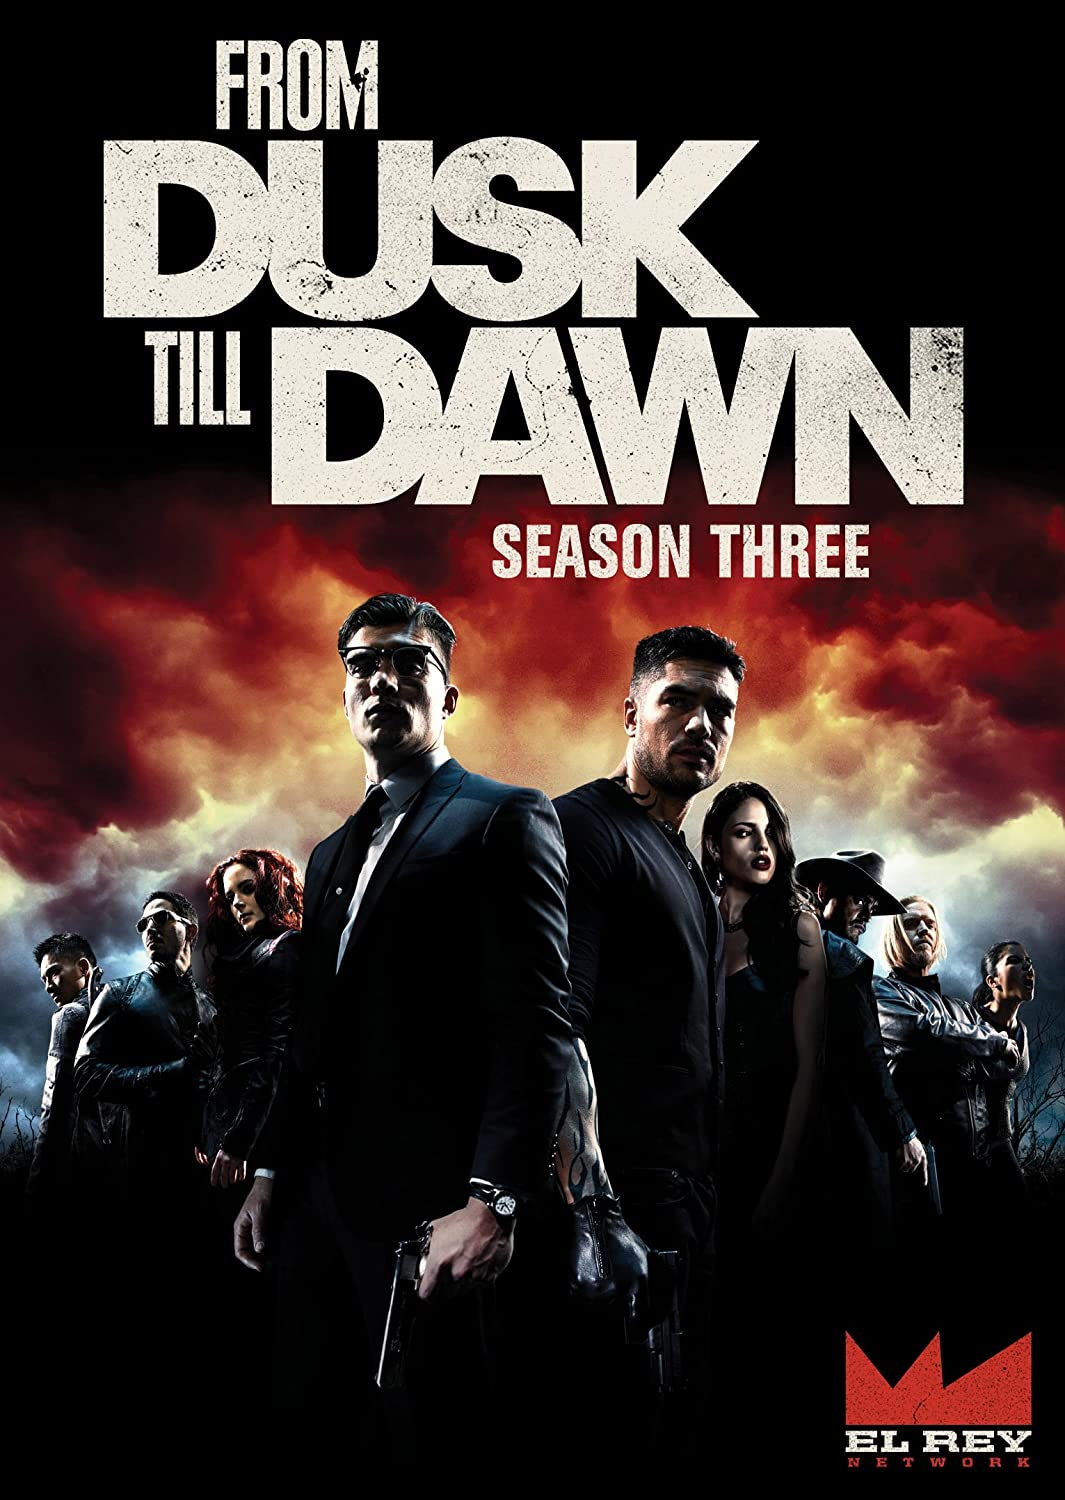 Amazon Com From Dusk Till Dawn The Series Season 3 D J